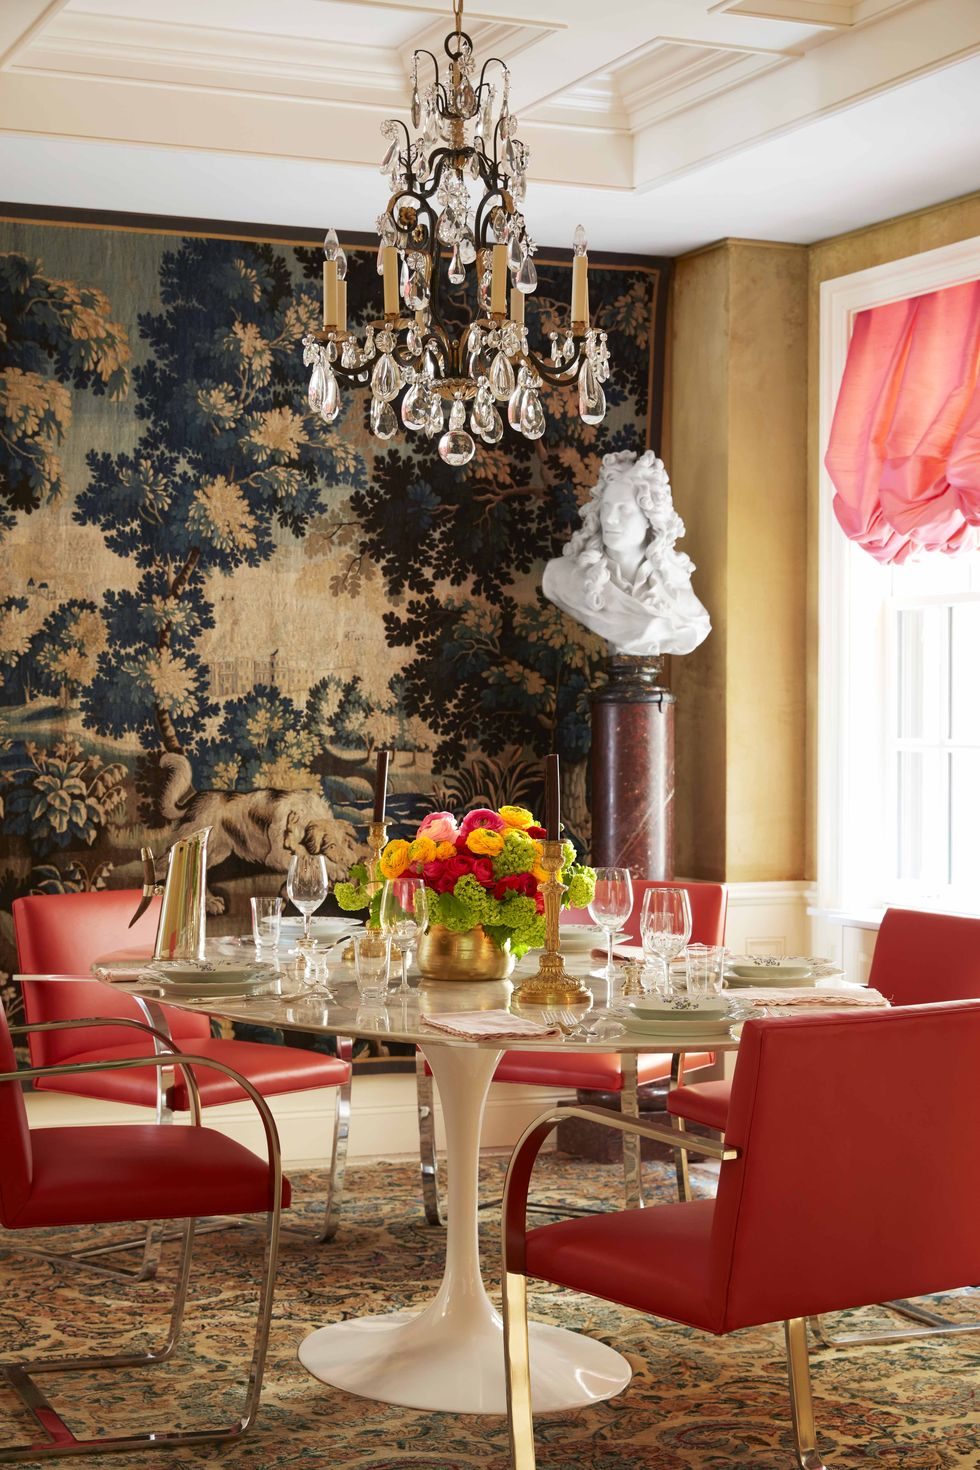 maureen-footer-dining-room-veranda-1555084501